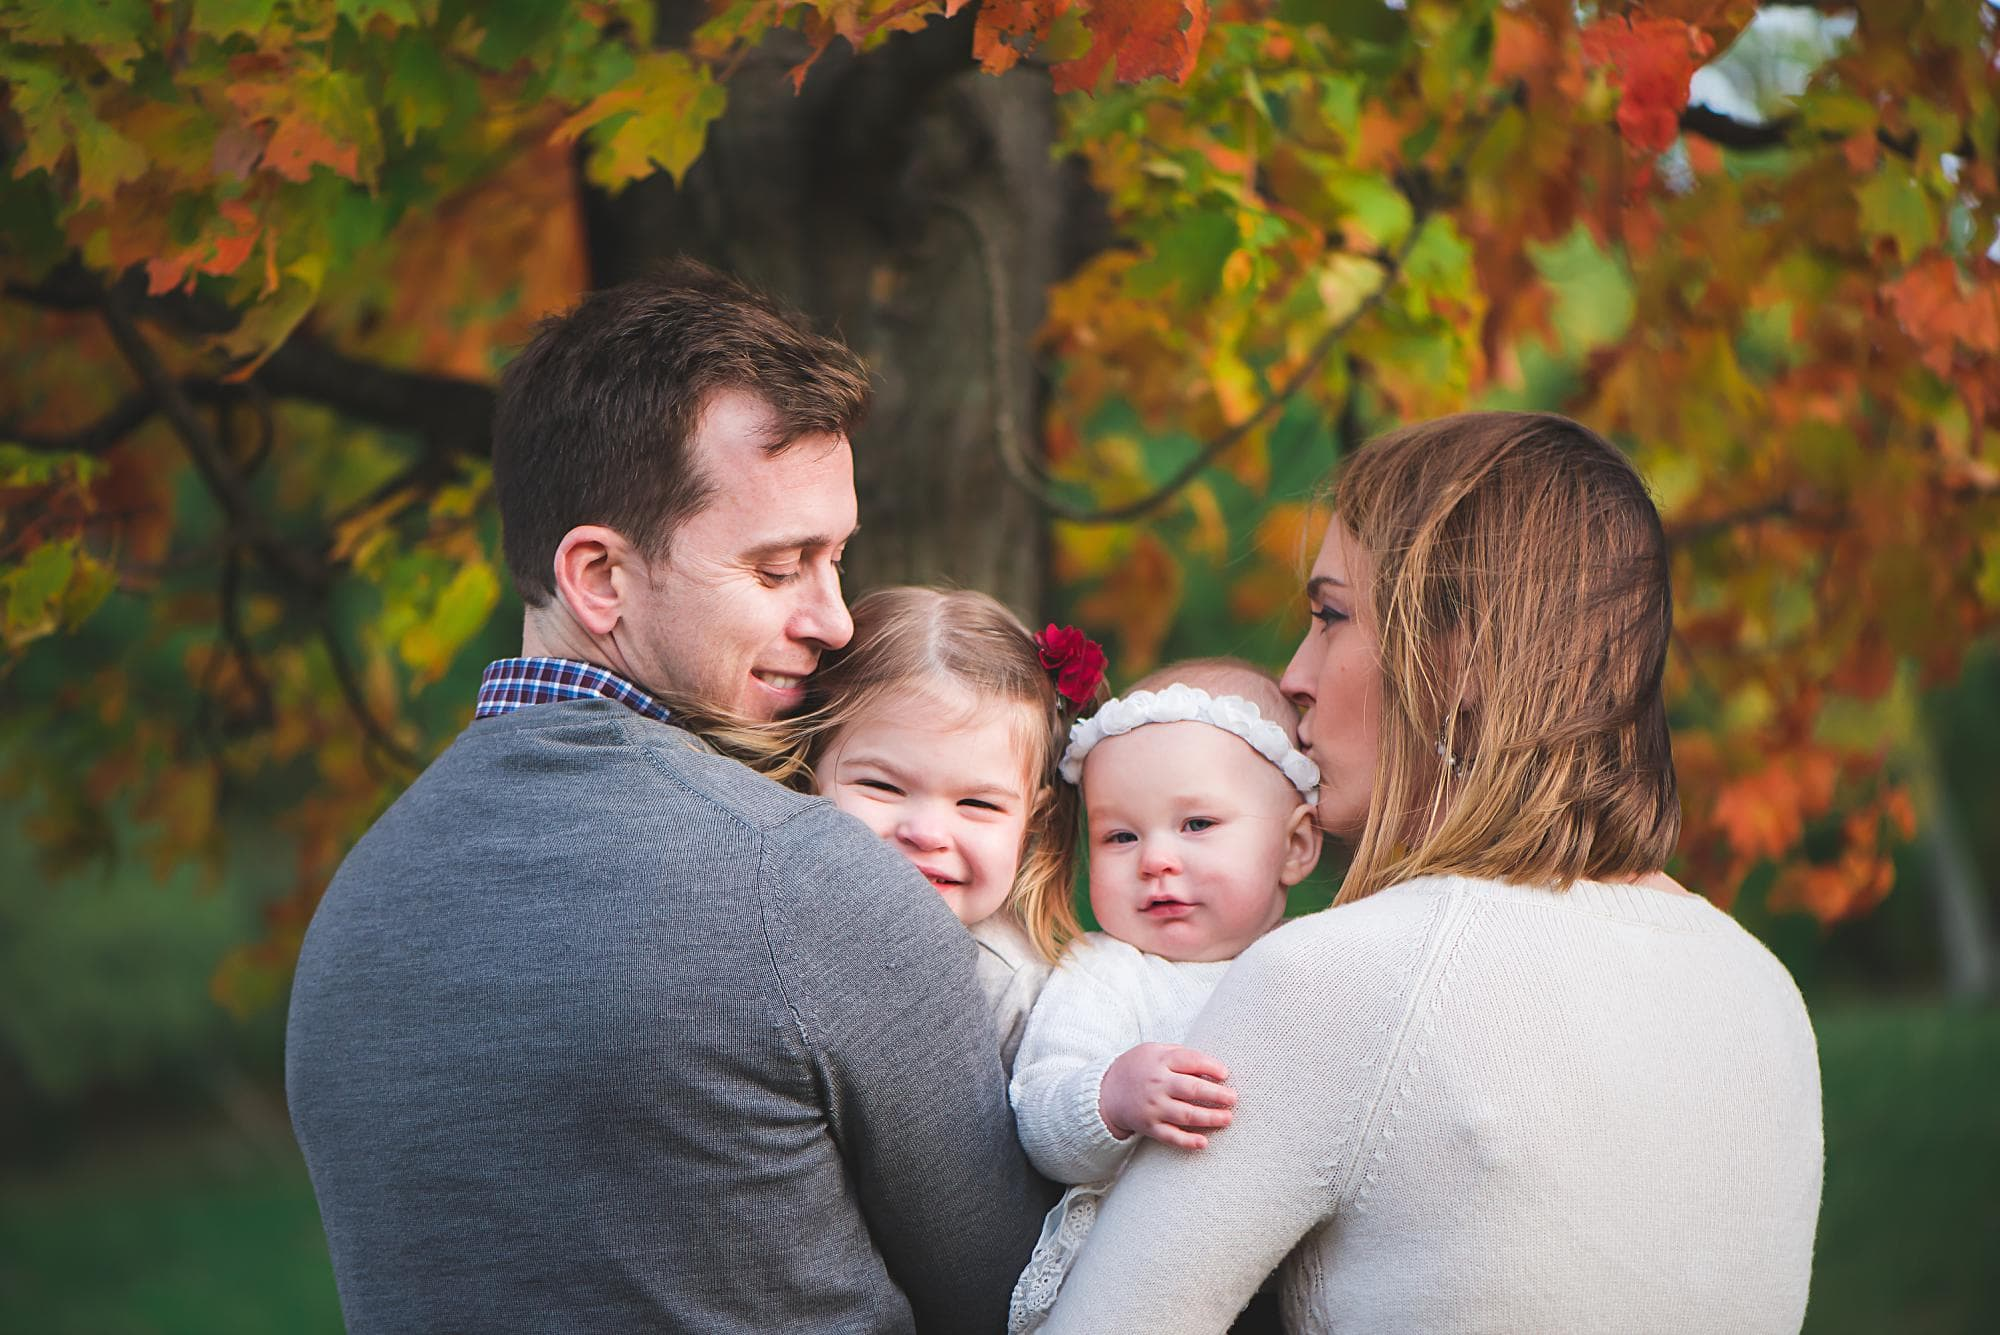 Mom and dad holding daughters under tree with orange leaves